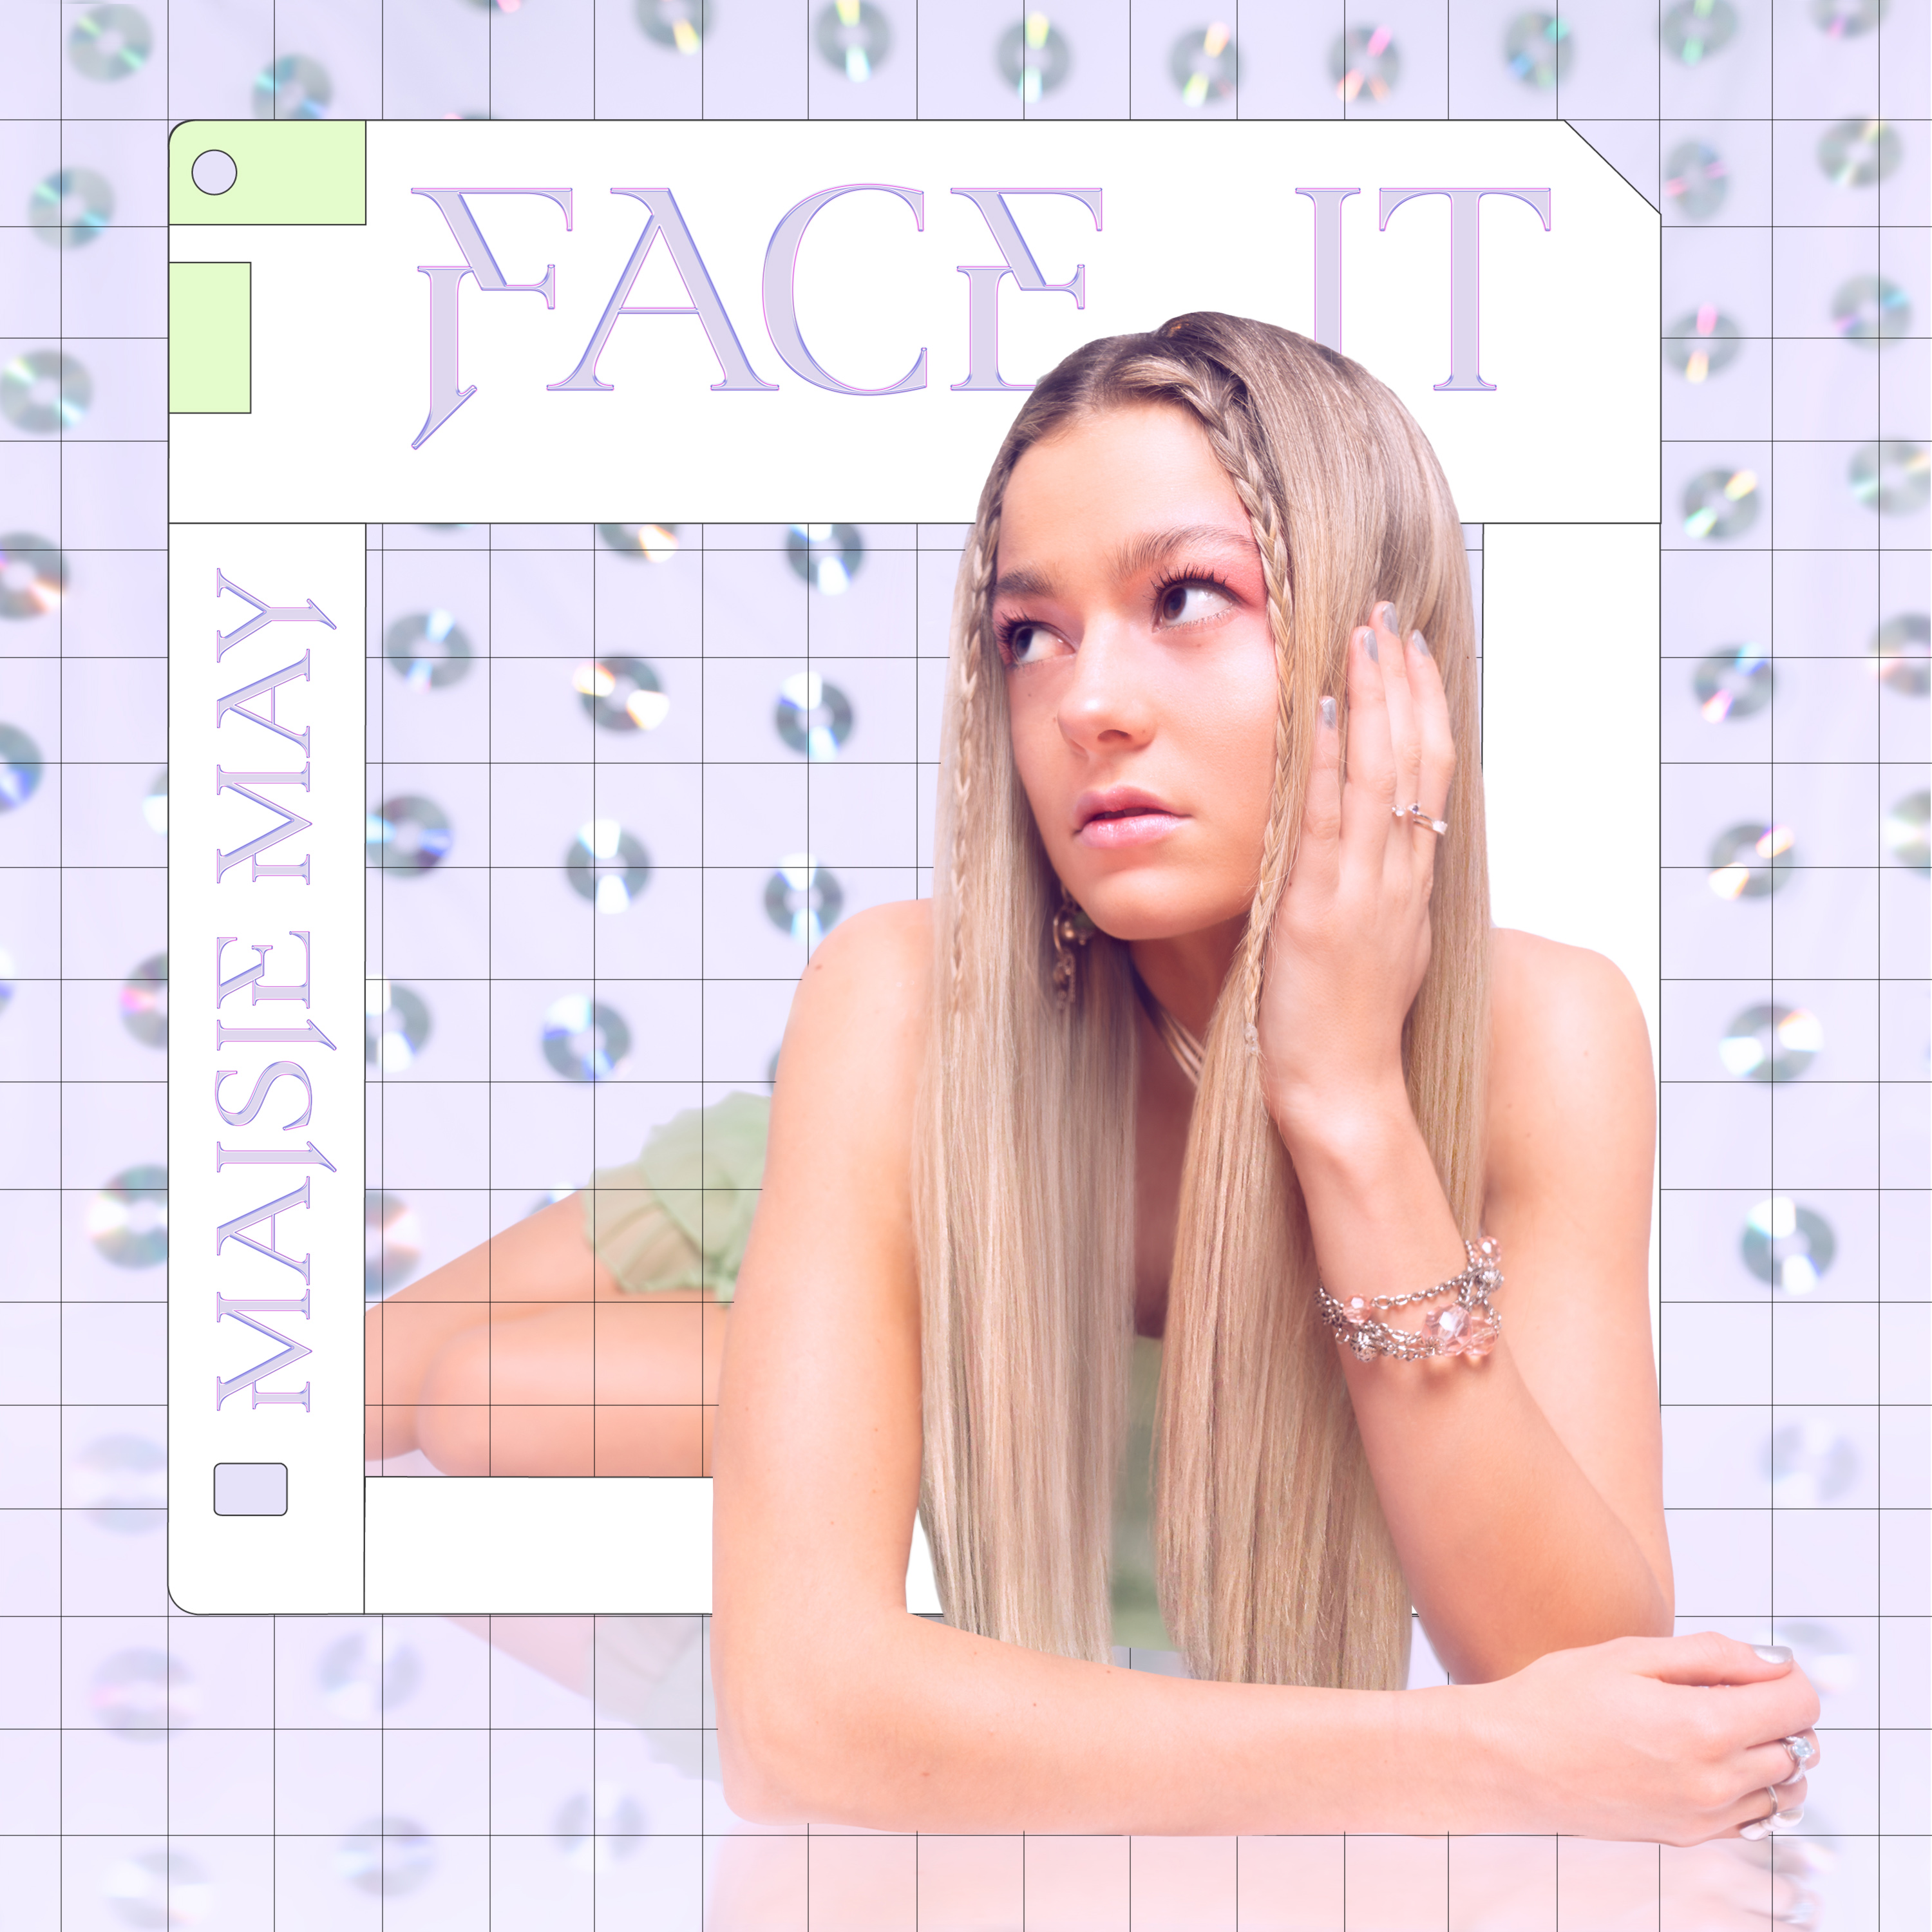 'Face It' the EP is out now on all streaming platforms!